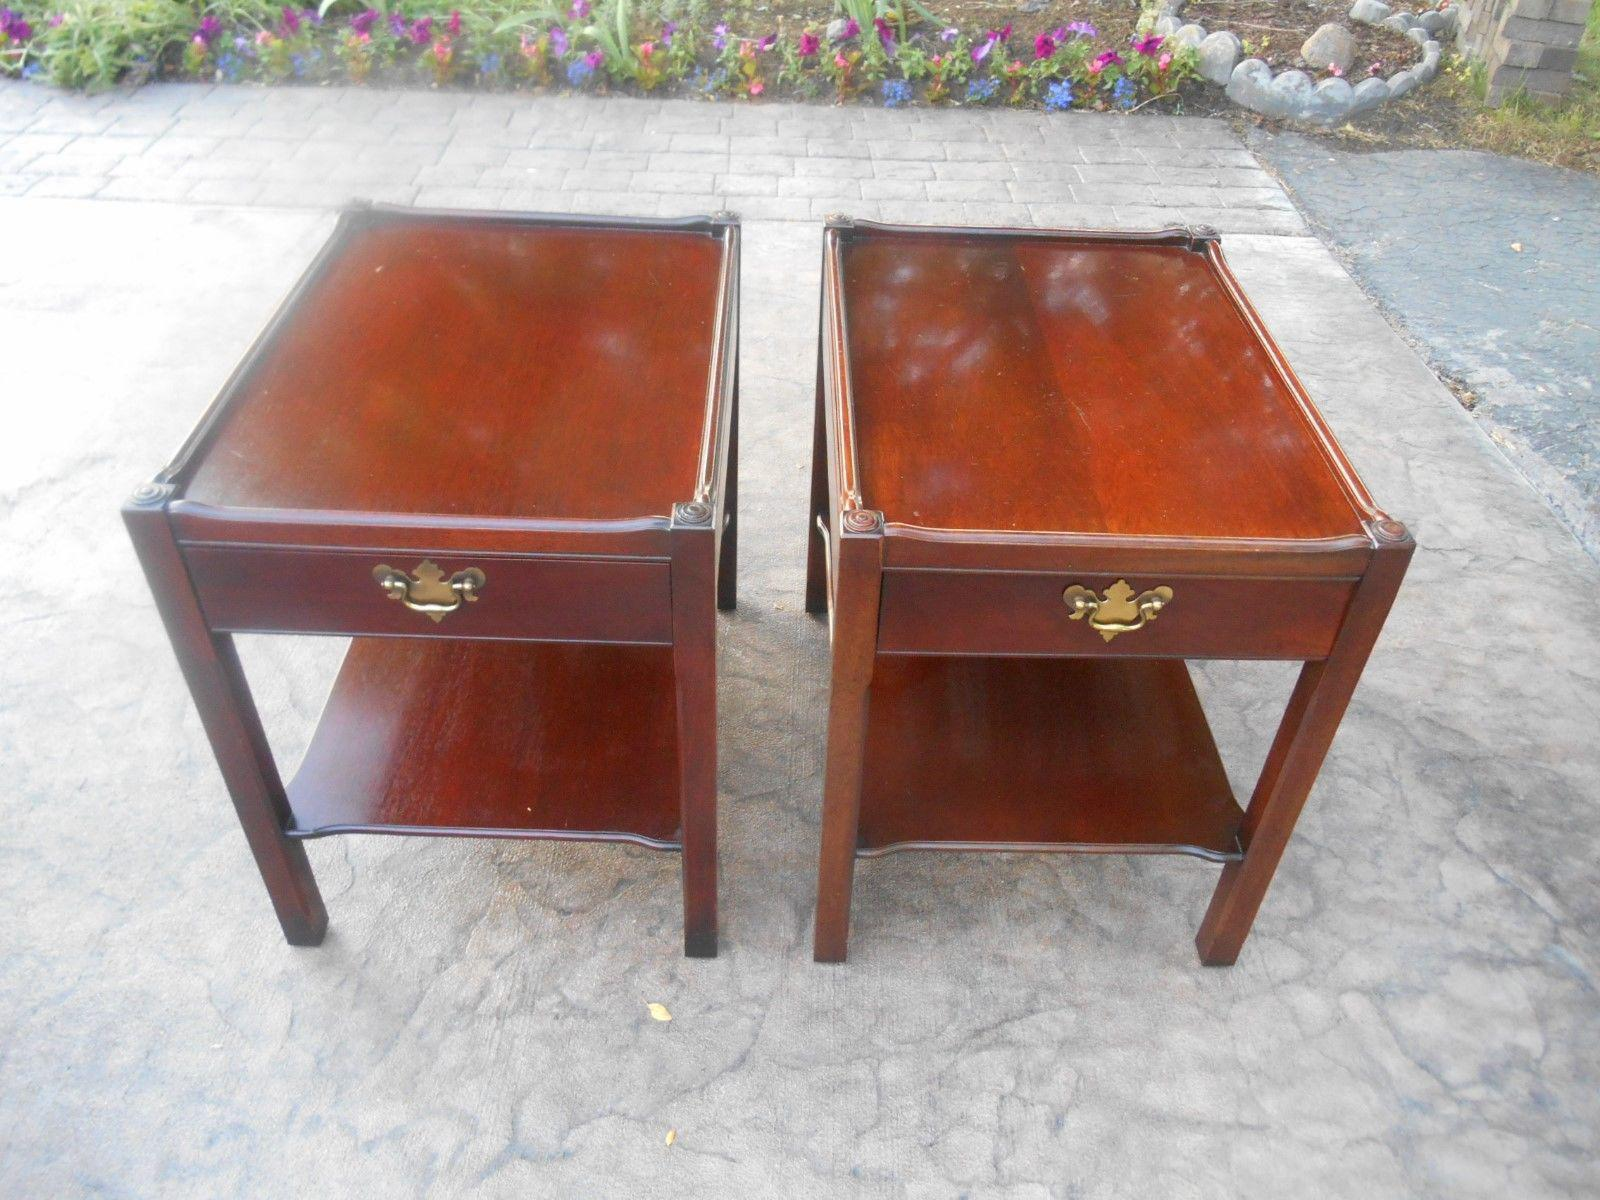 Hickory Chair Co. James River Two Tier End Tables   A Pair   Image